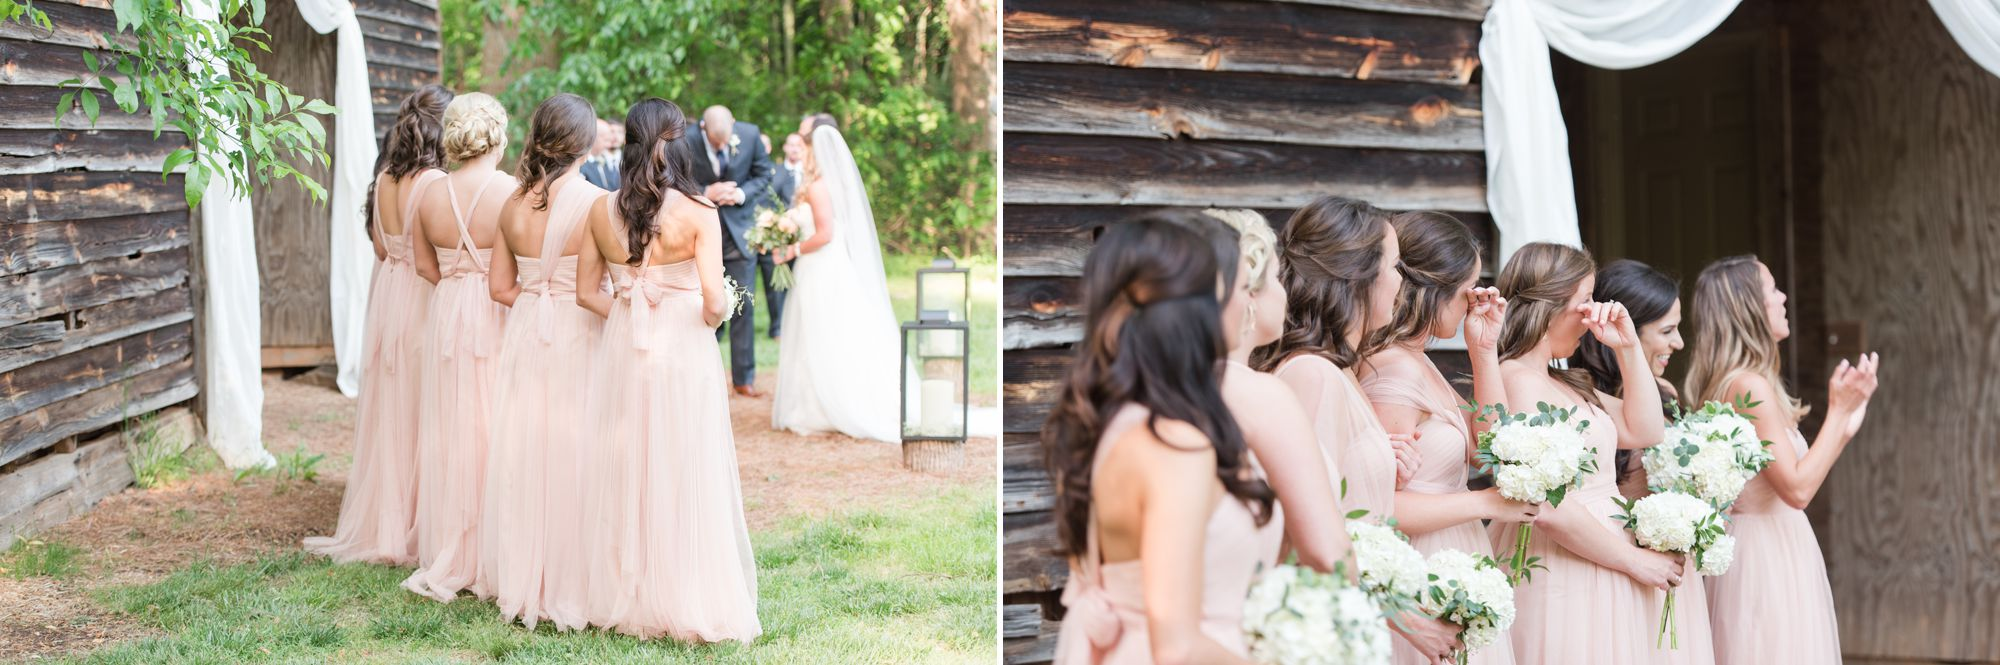 beaver-dam-house-davidson-nc-wedding-photos 49